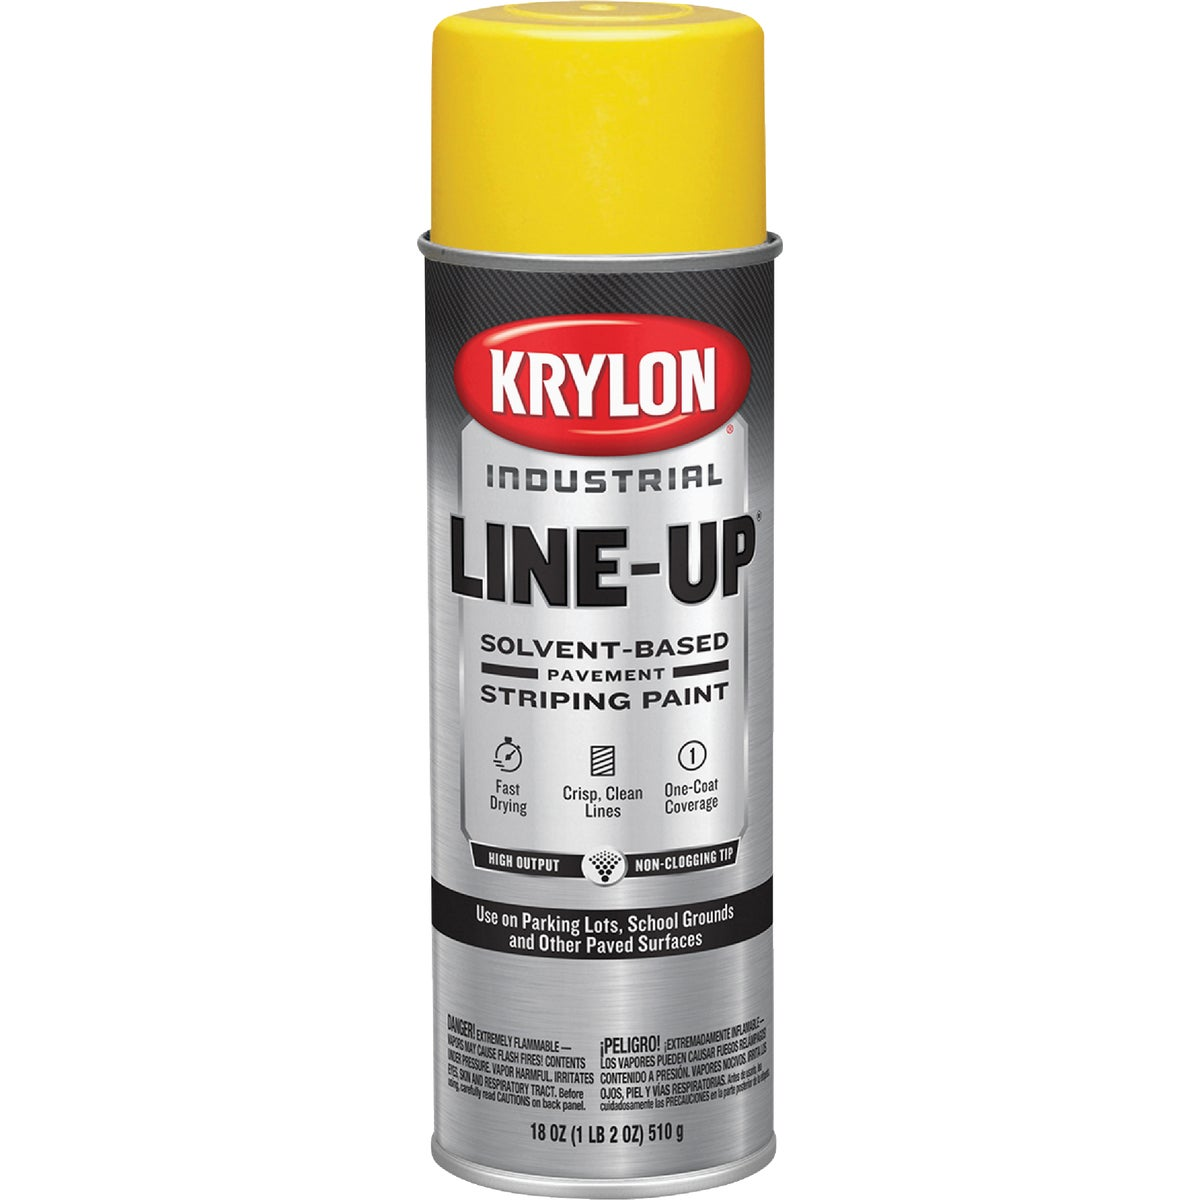 HGHWY YEL STRIPING PAINT - 5911 by Krylon/consumer Div